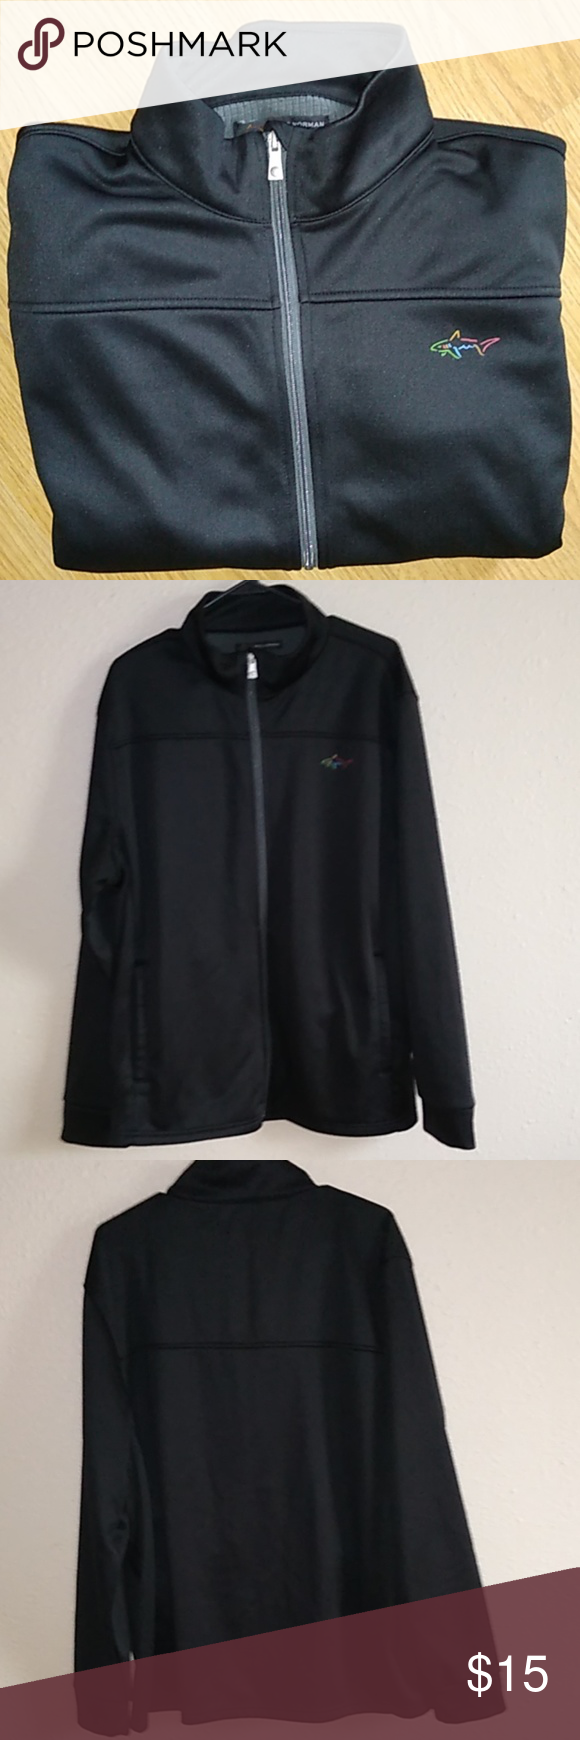 Greg Norman Jacket Xl Greg Norman Jacket Xl Good Condition Two Front Pockets As Well As Two Deep Inner Pockets Greg Norma Clothes Design Fashion Fashion Trends